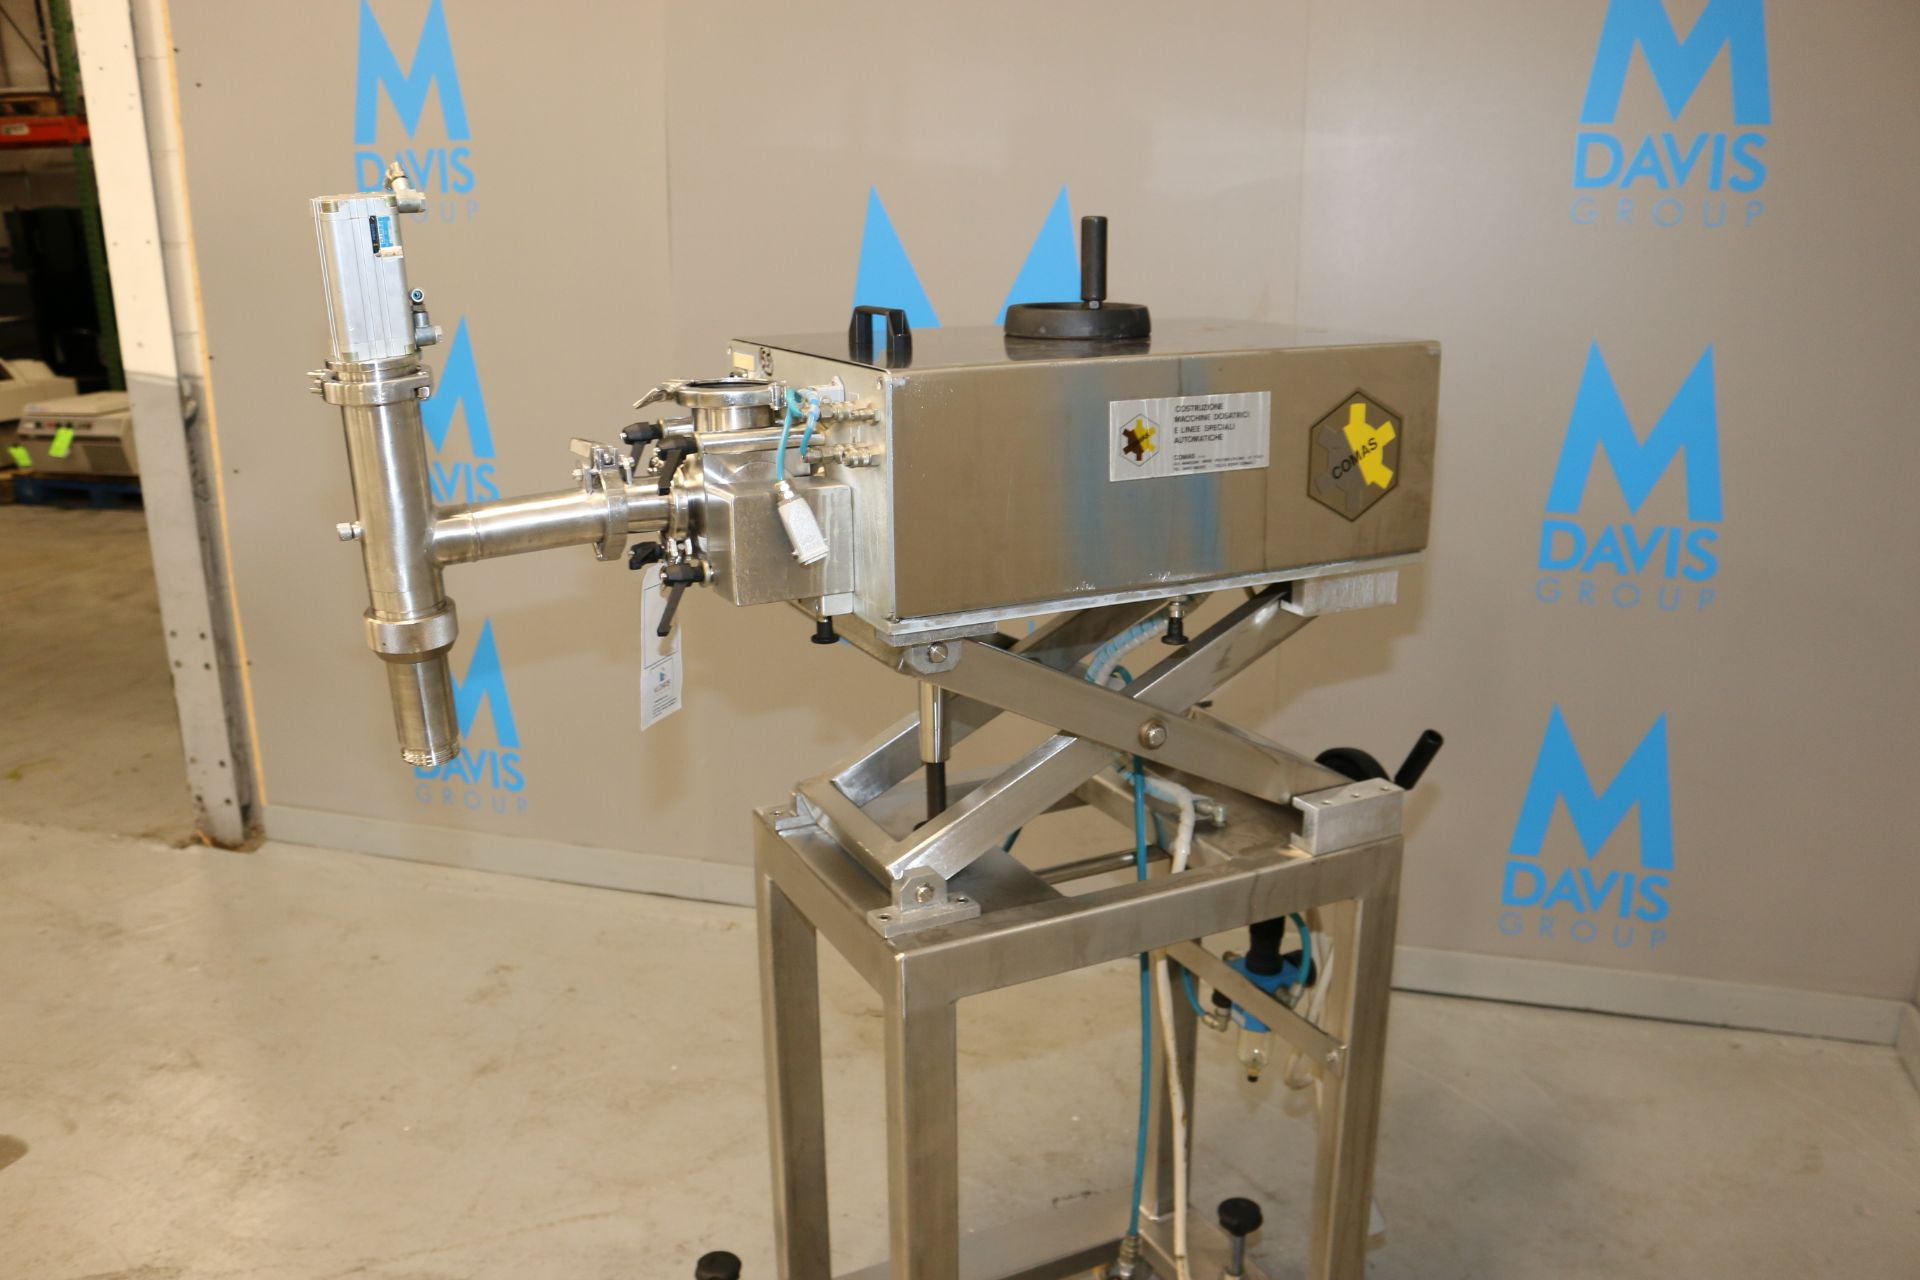 Lot 36 - Comas S/S Dosing Pump, Matricola: 2489, Year: 1996, with Adjustable S/S Scissor Frame, with S/S